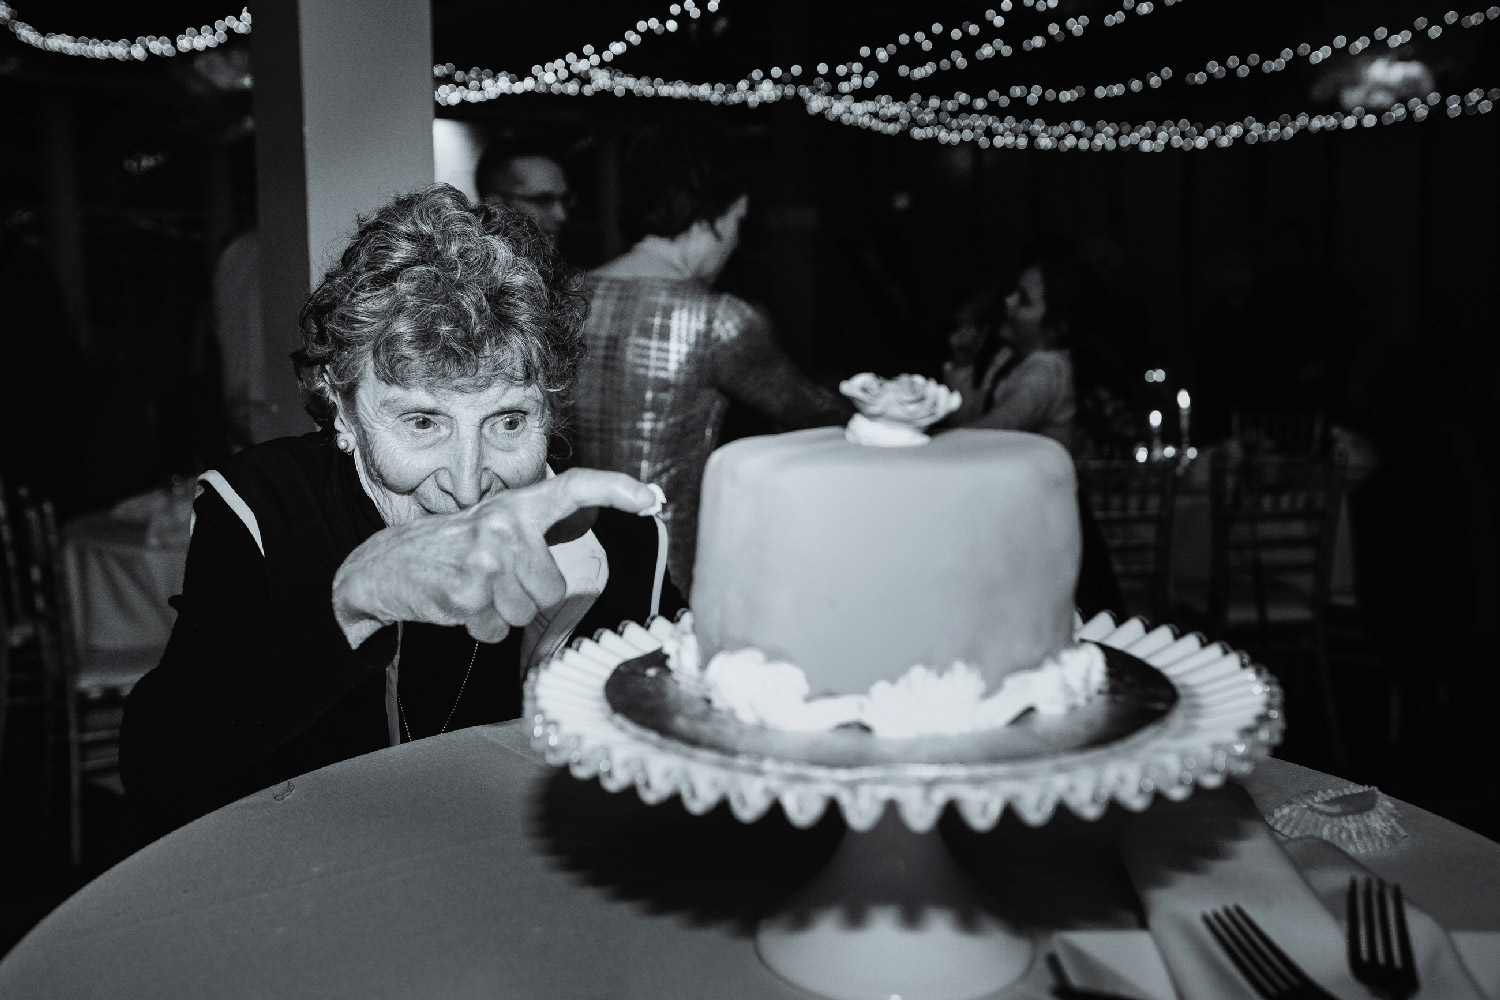 Older wedding guest sticking finger in cake to steal icing at reception Buffalo Wedding Photographer Jacqueline Connor Photography